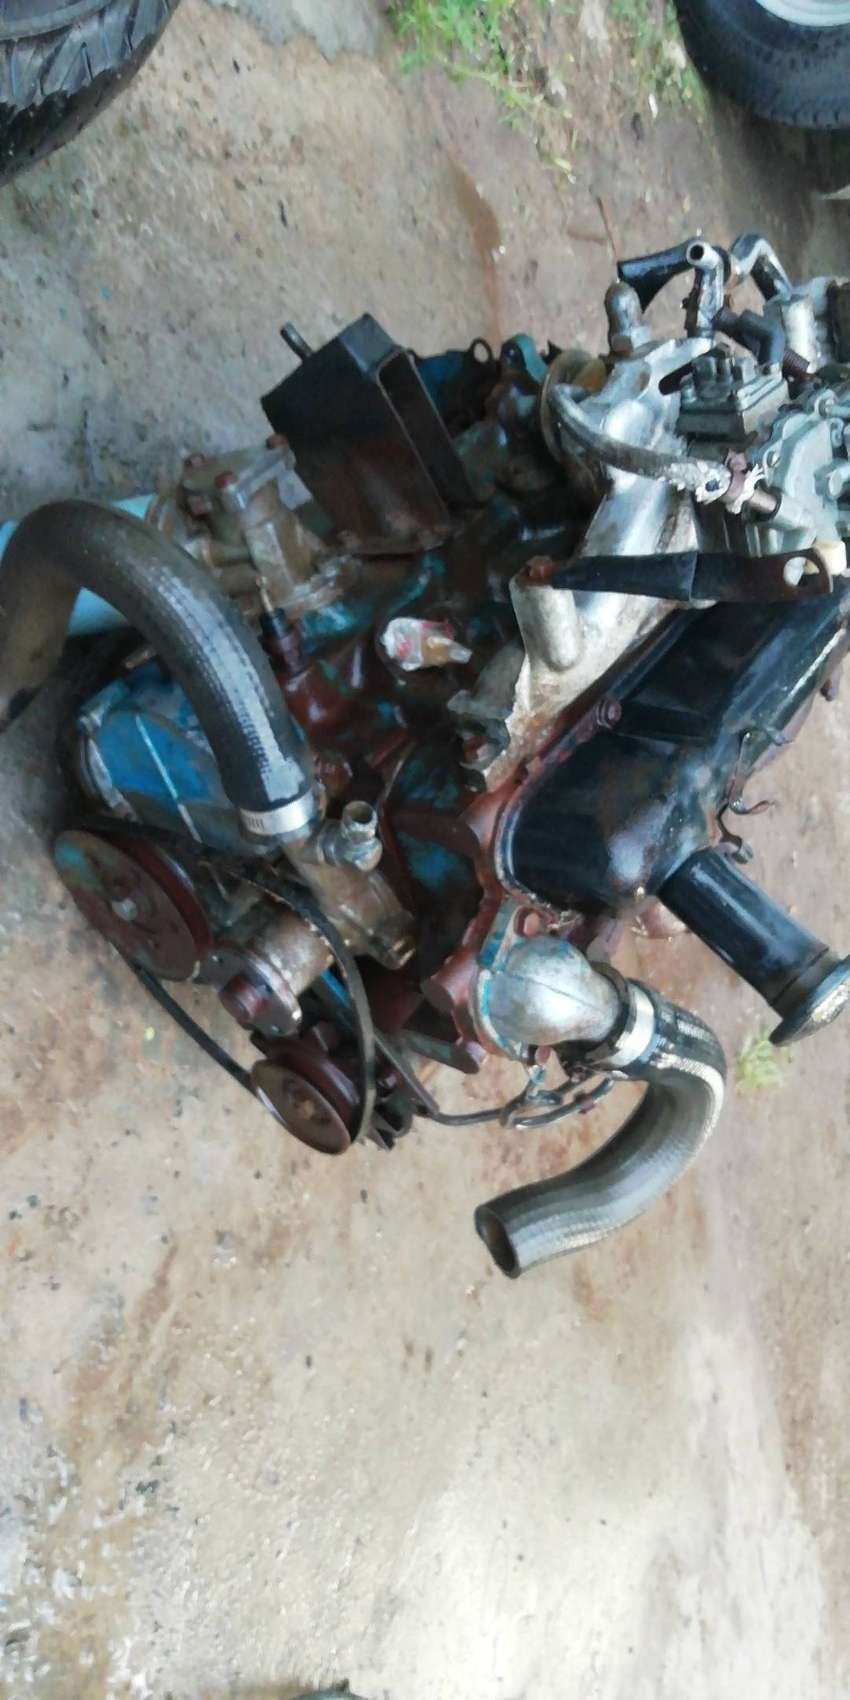 Ford sierra 1600 with 1600 kent engine and gearbox 0